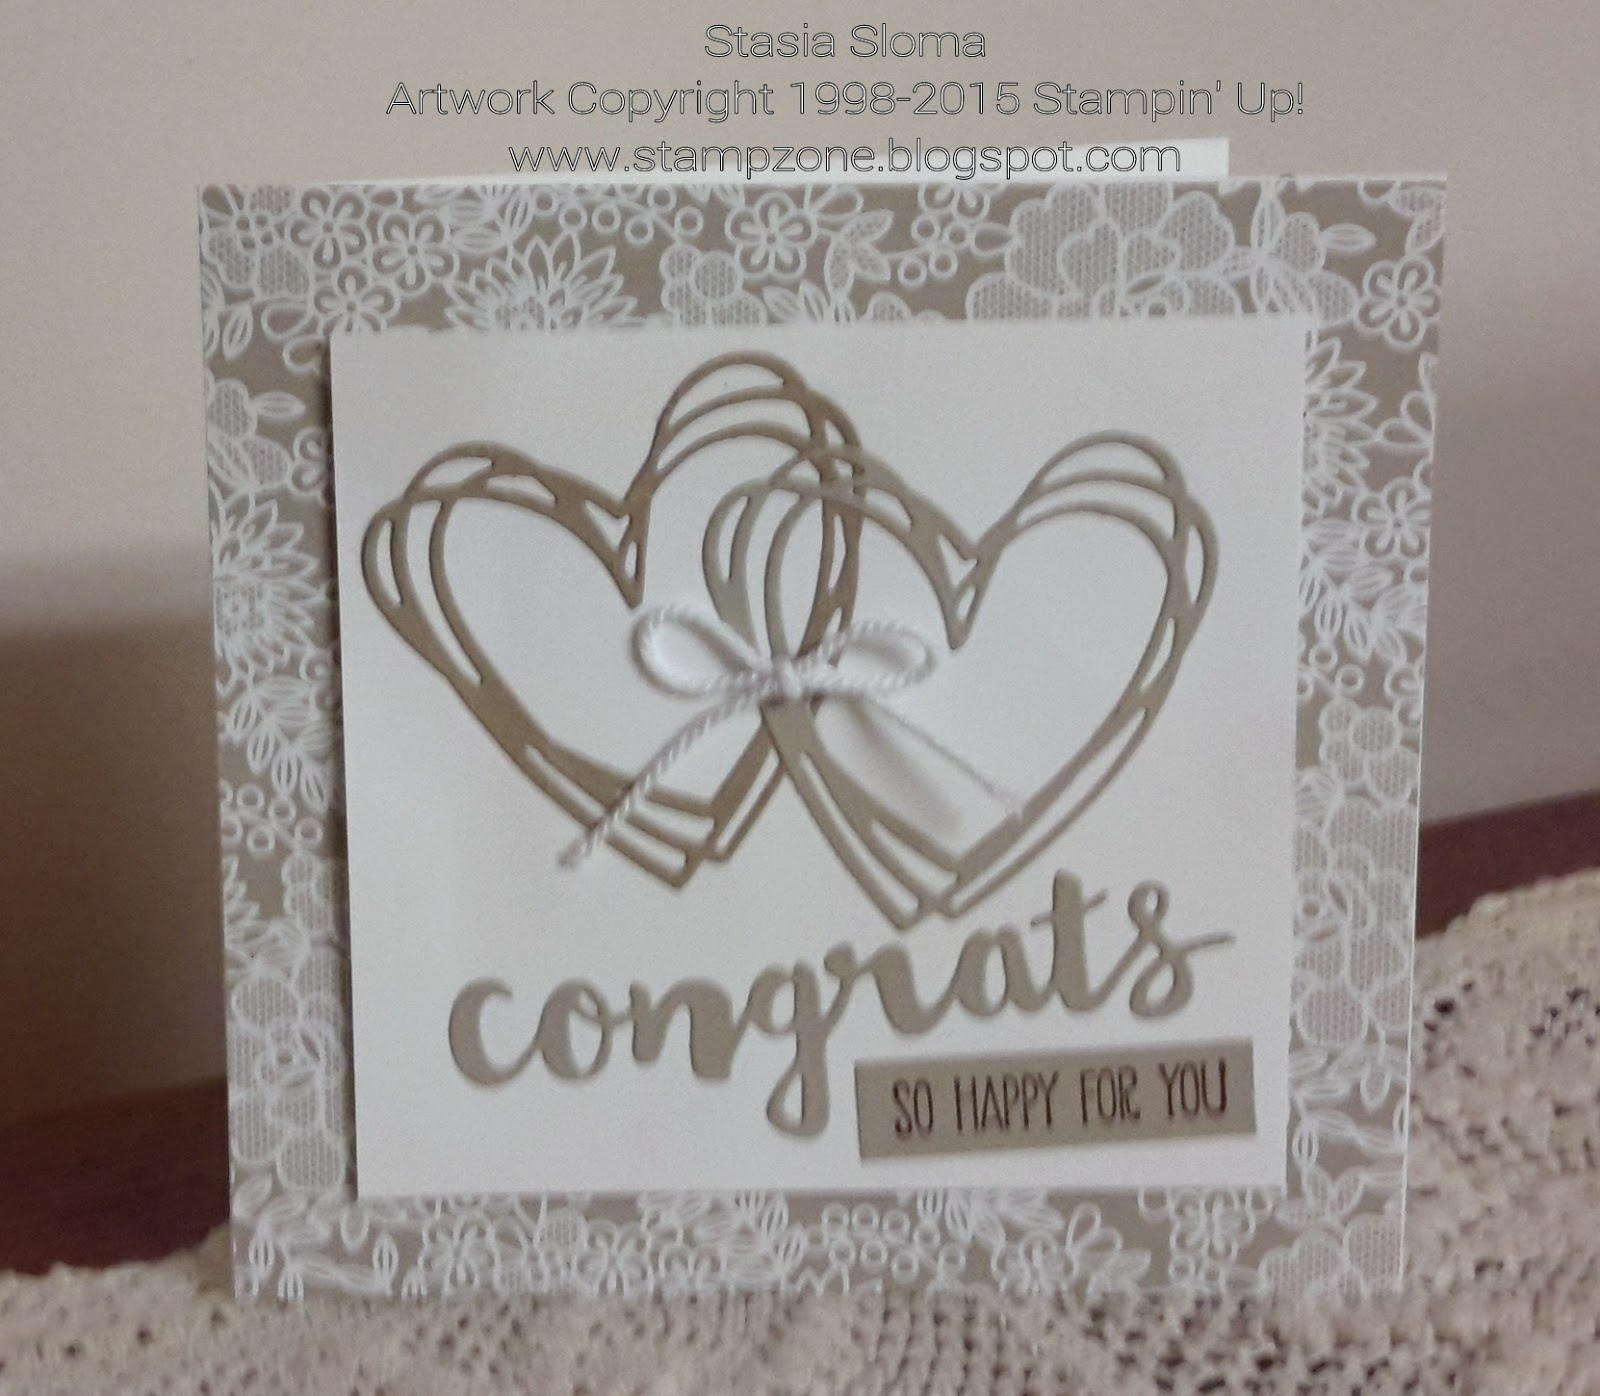 Wedding Cards Ideas To Make: Stampin' & Scrappin' With Stasia: Congrats